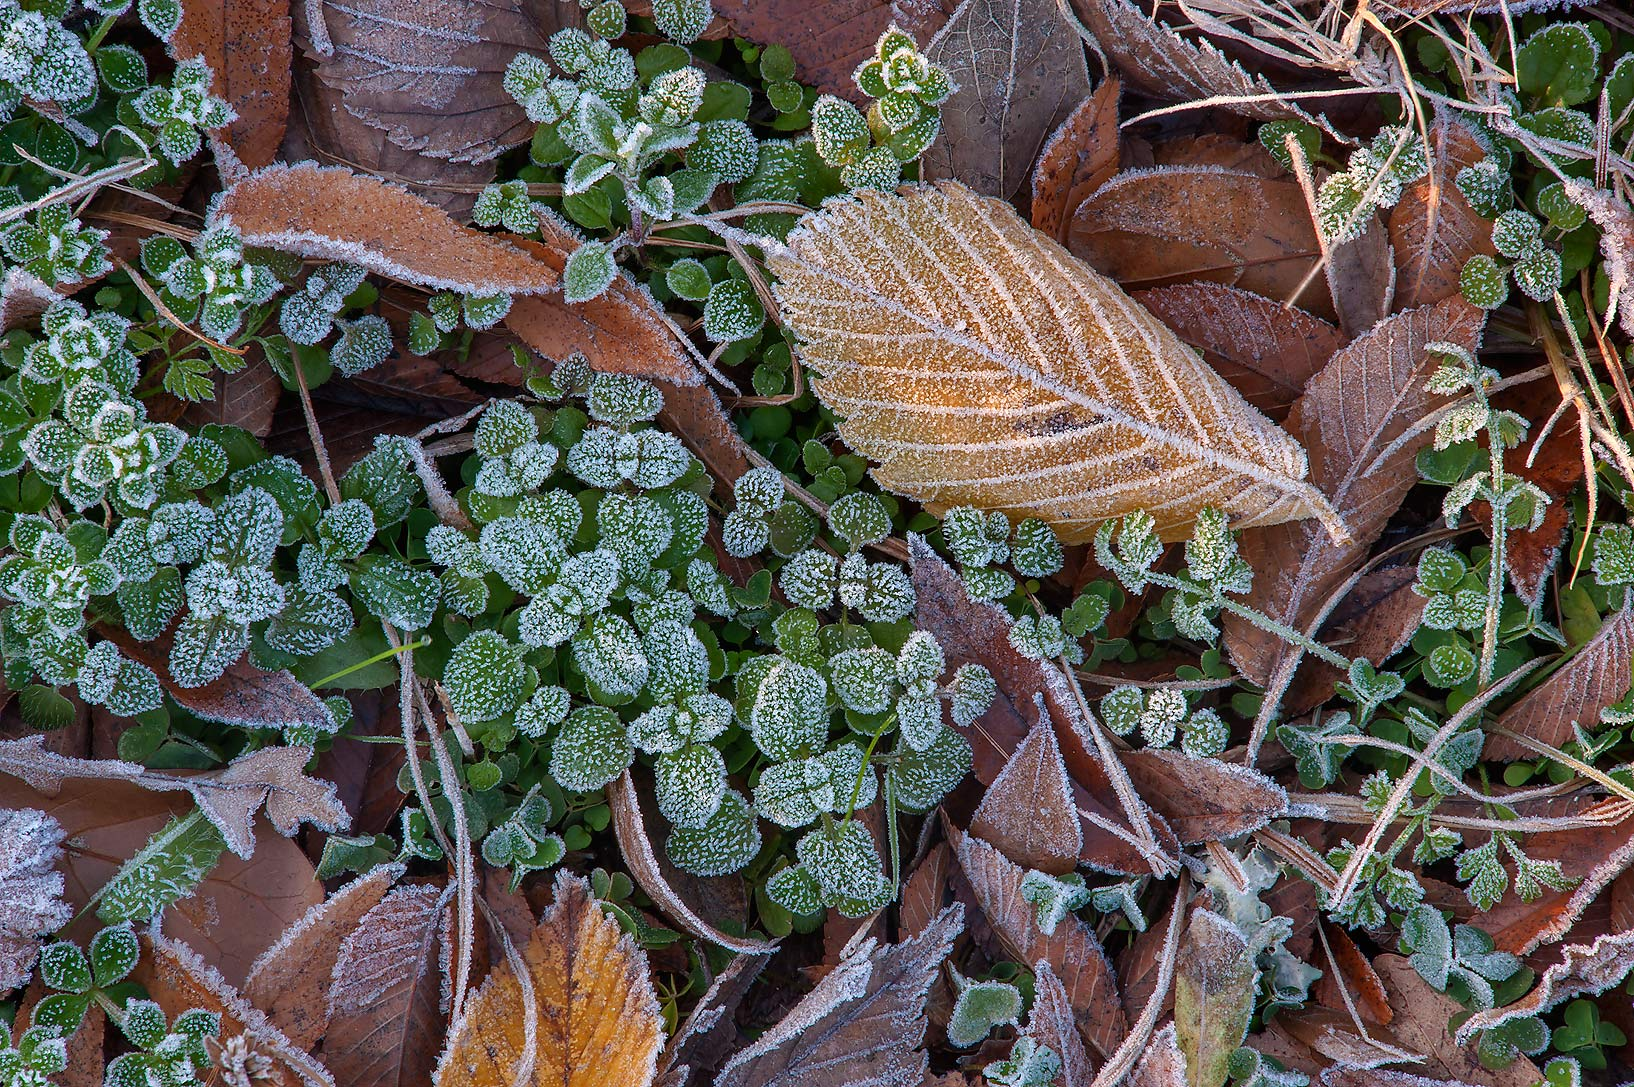 Morning freeze on small leaves of Park Hudson Trail. Bryan, Texas